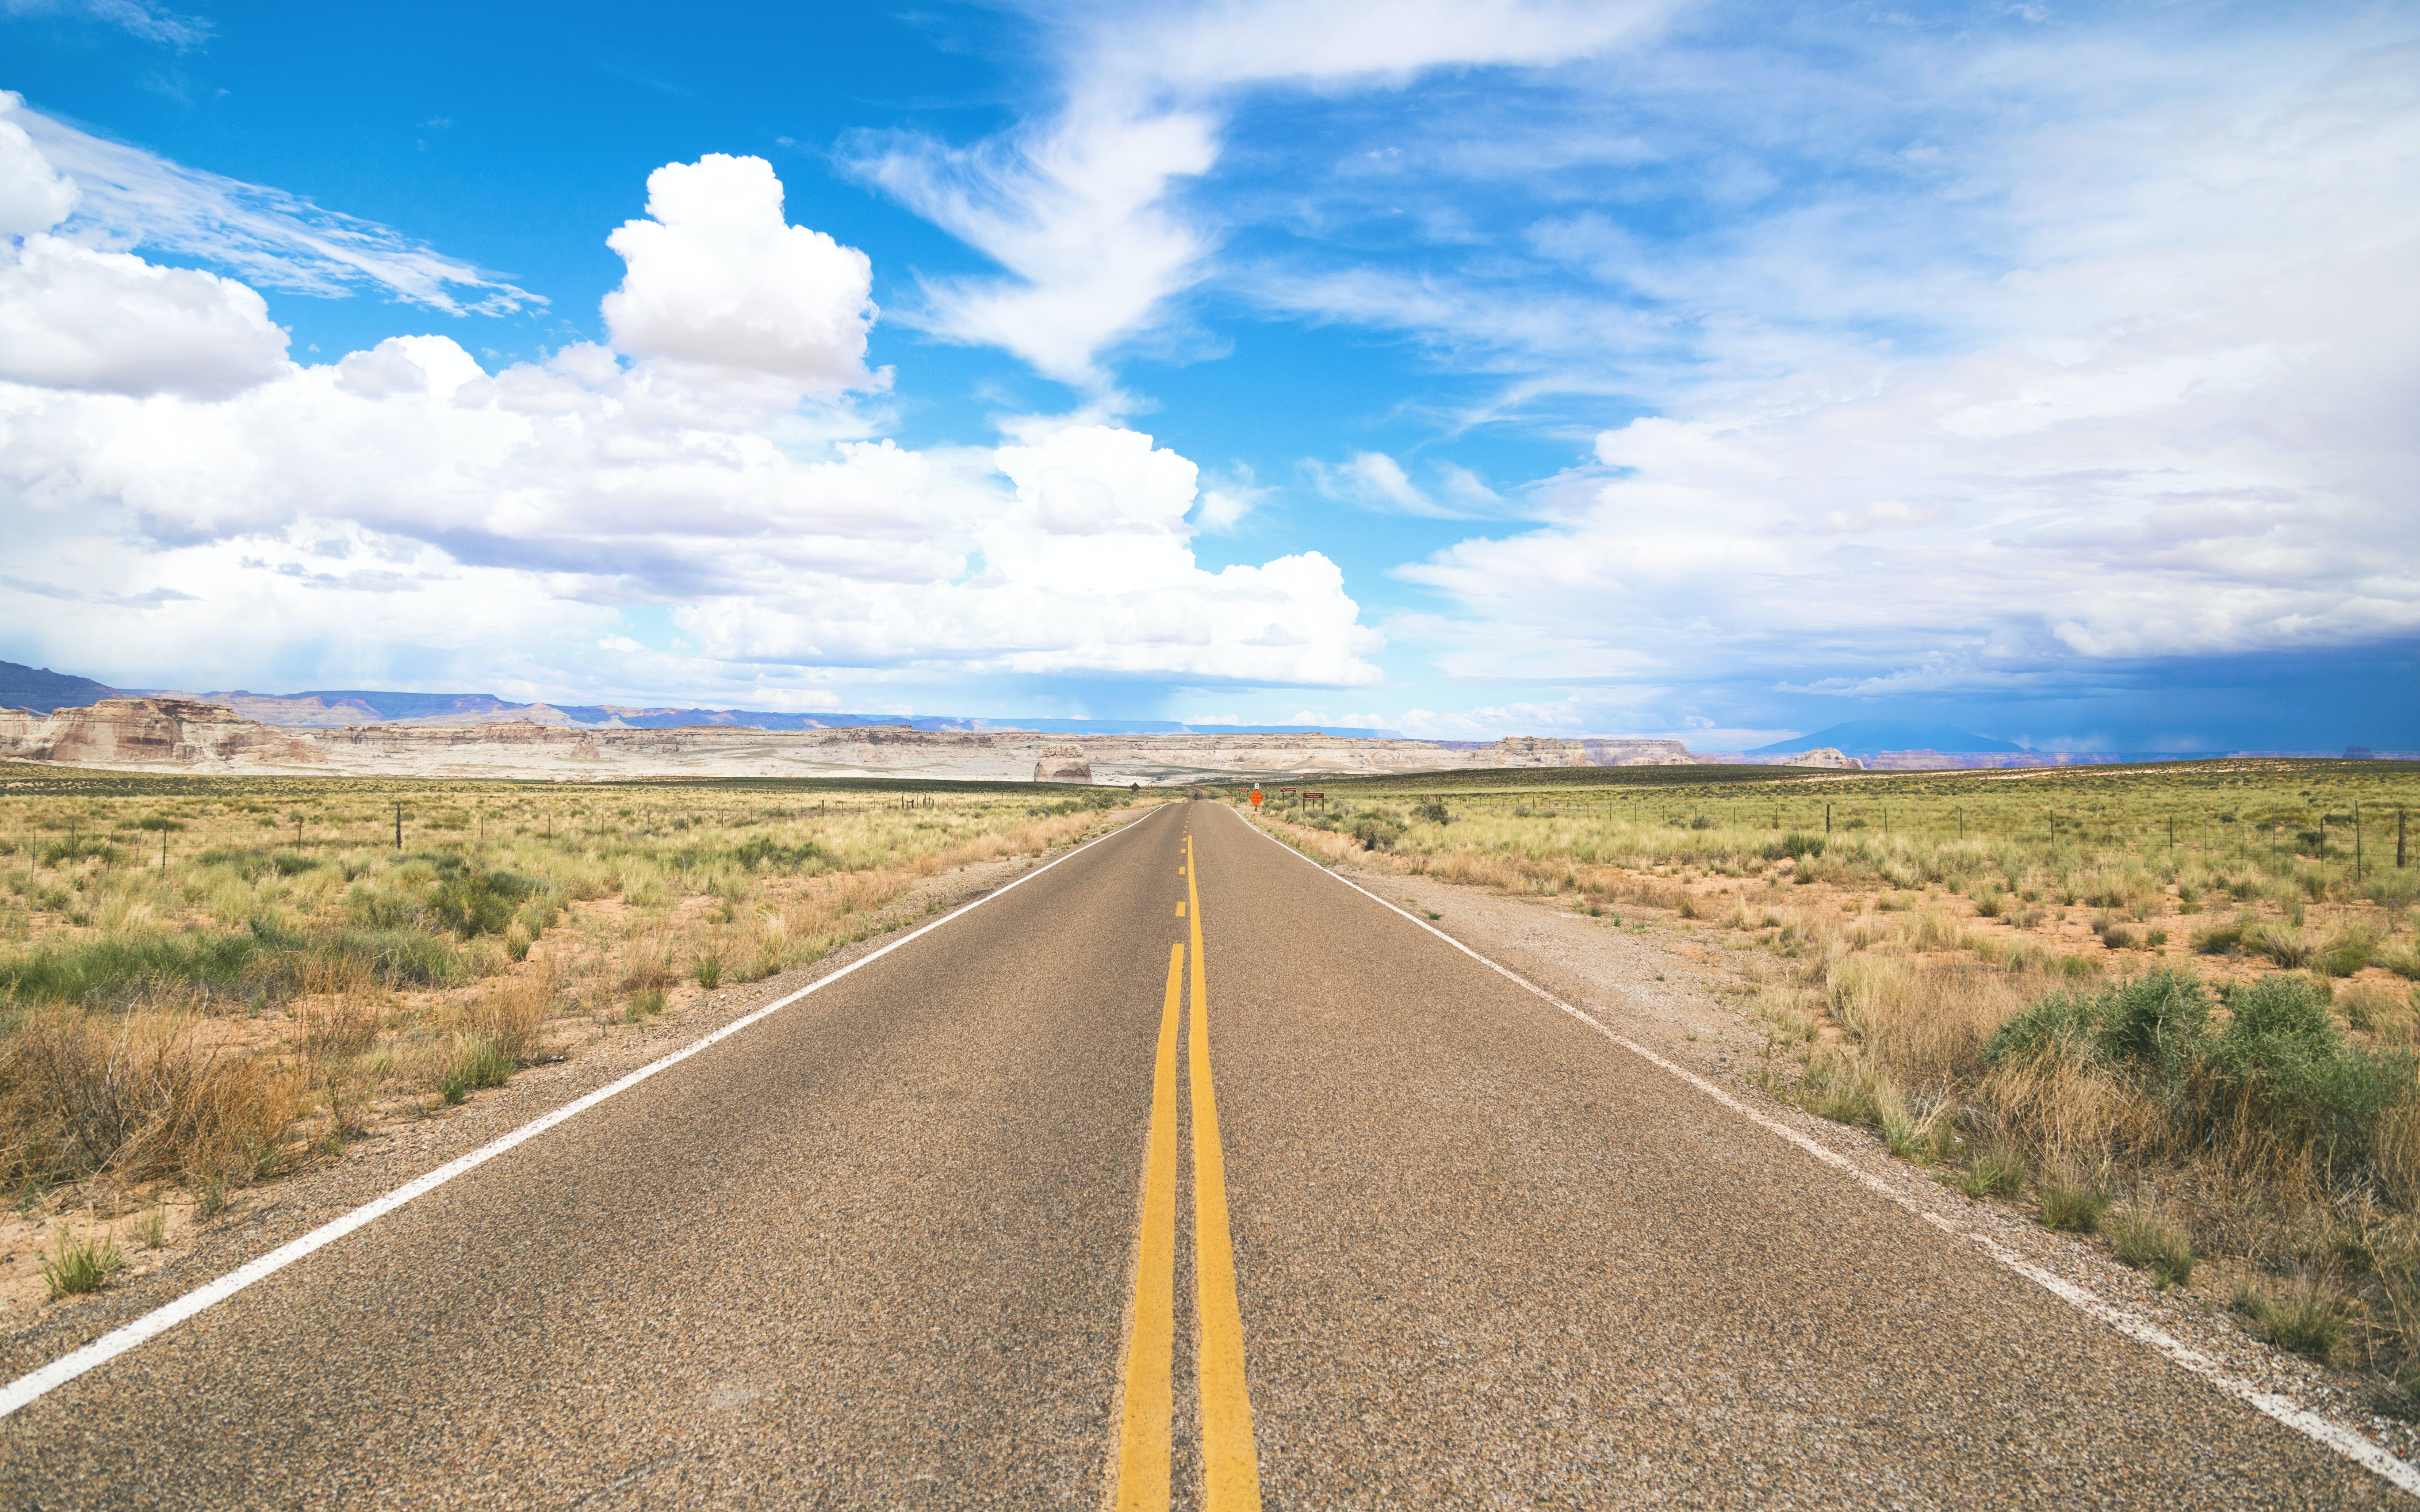 Photo of a cloudy sky with an empty two lane road // Copyright to original photographer